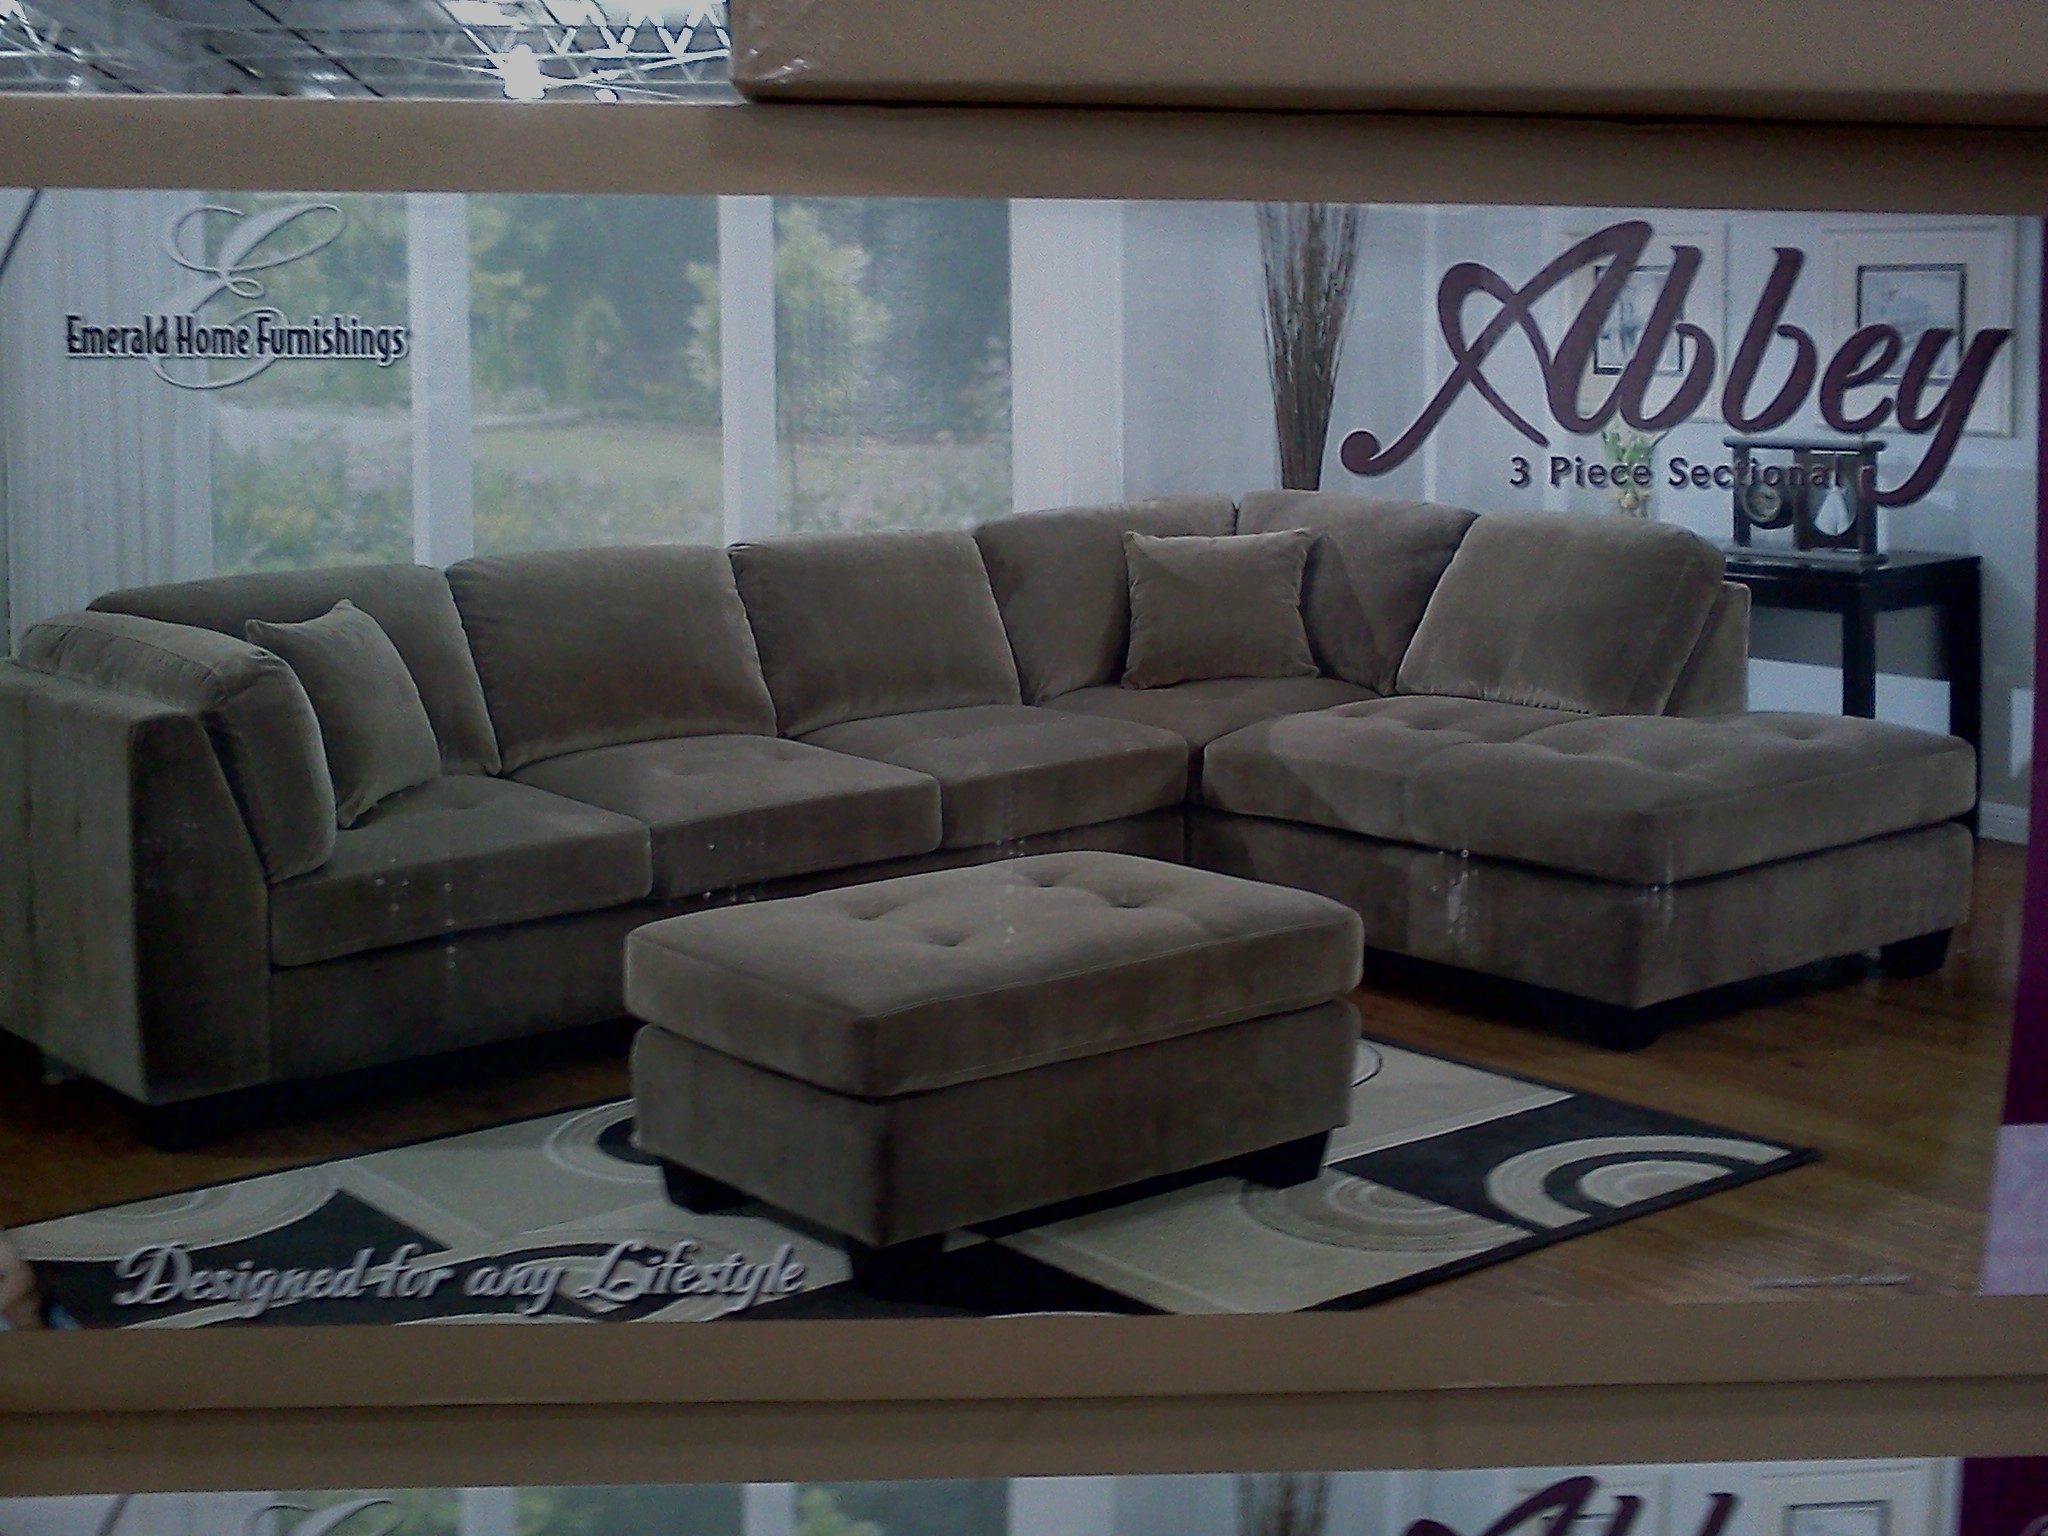 Amusing Sectional Sofas At Costco 11 About Remodel Sectional Sofas Regarding Raleigh Sectional Sofas (Image 5 of 10)